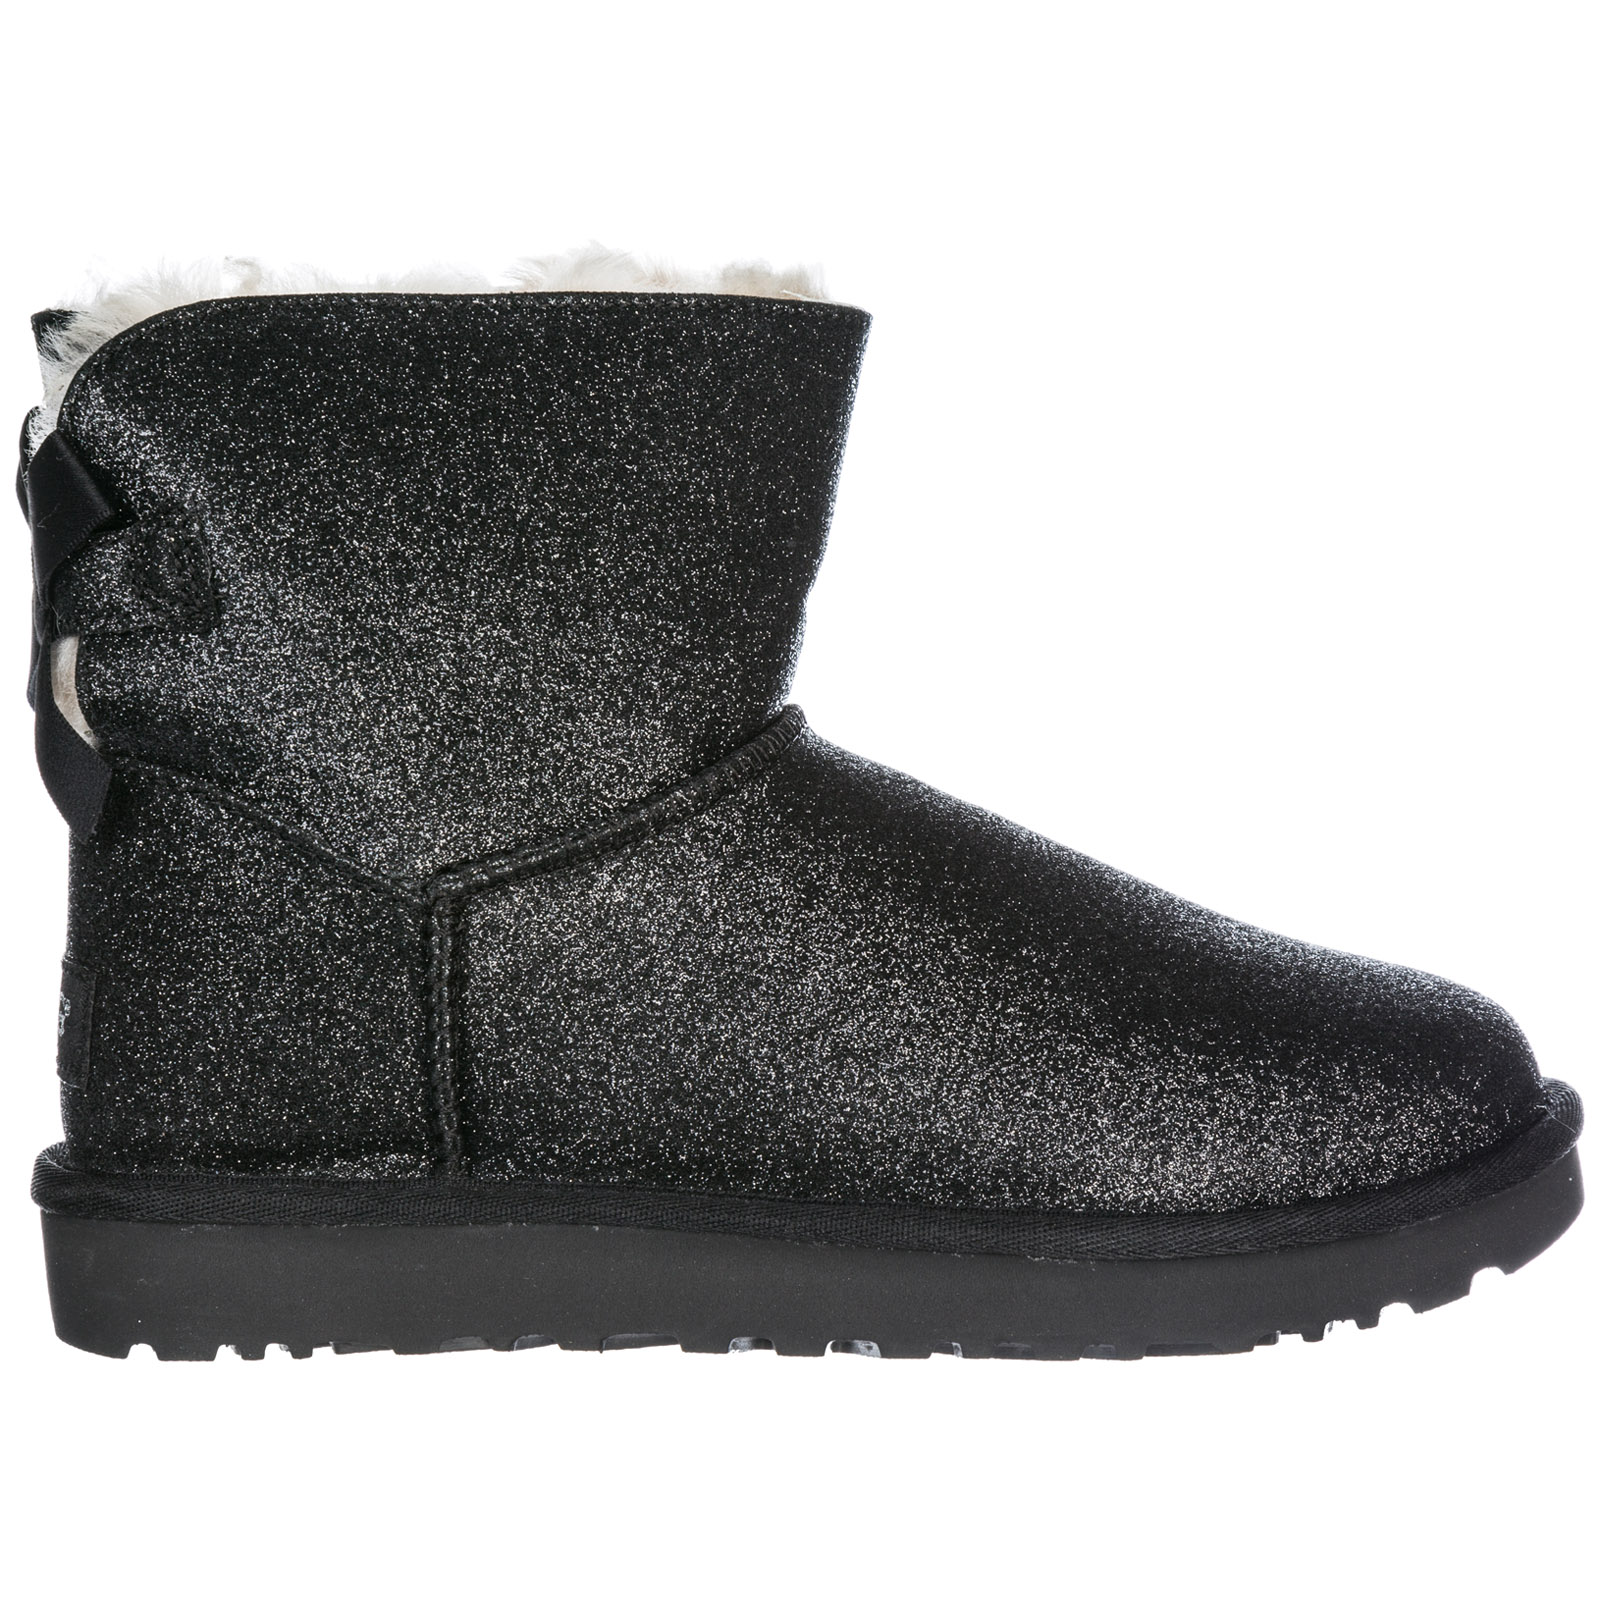 ca7b5b976 UGG Women's Boots Mini Bailey Bow Sparkle in Black. Ugg Women